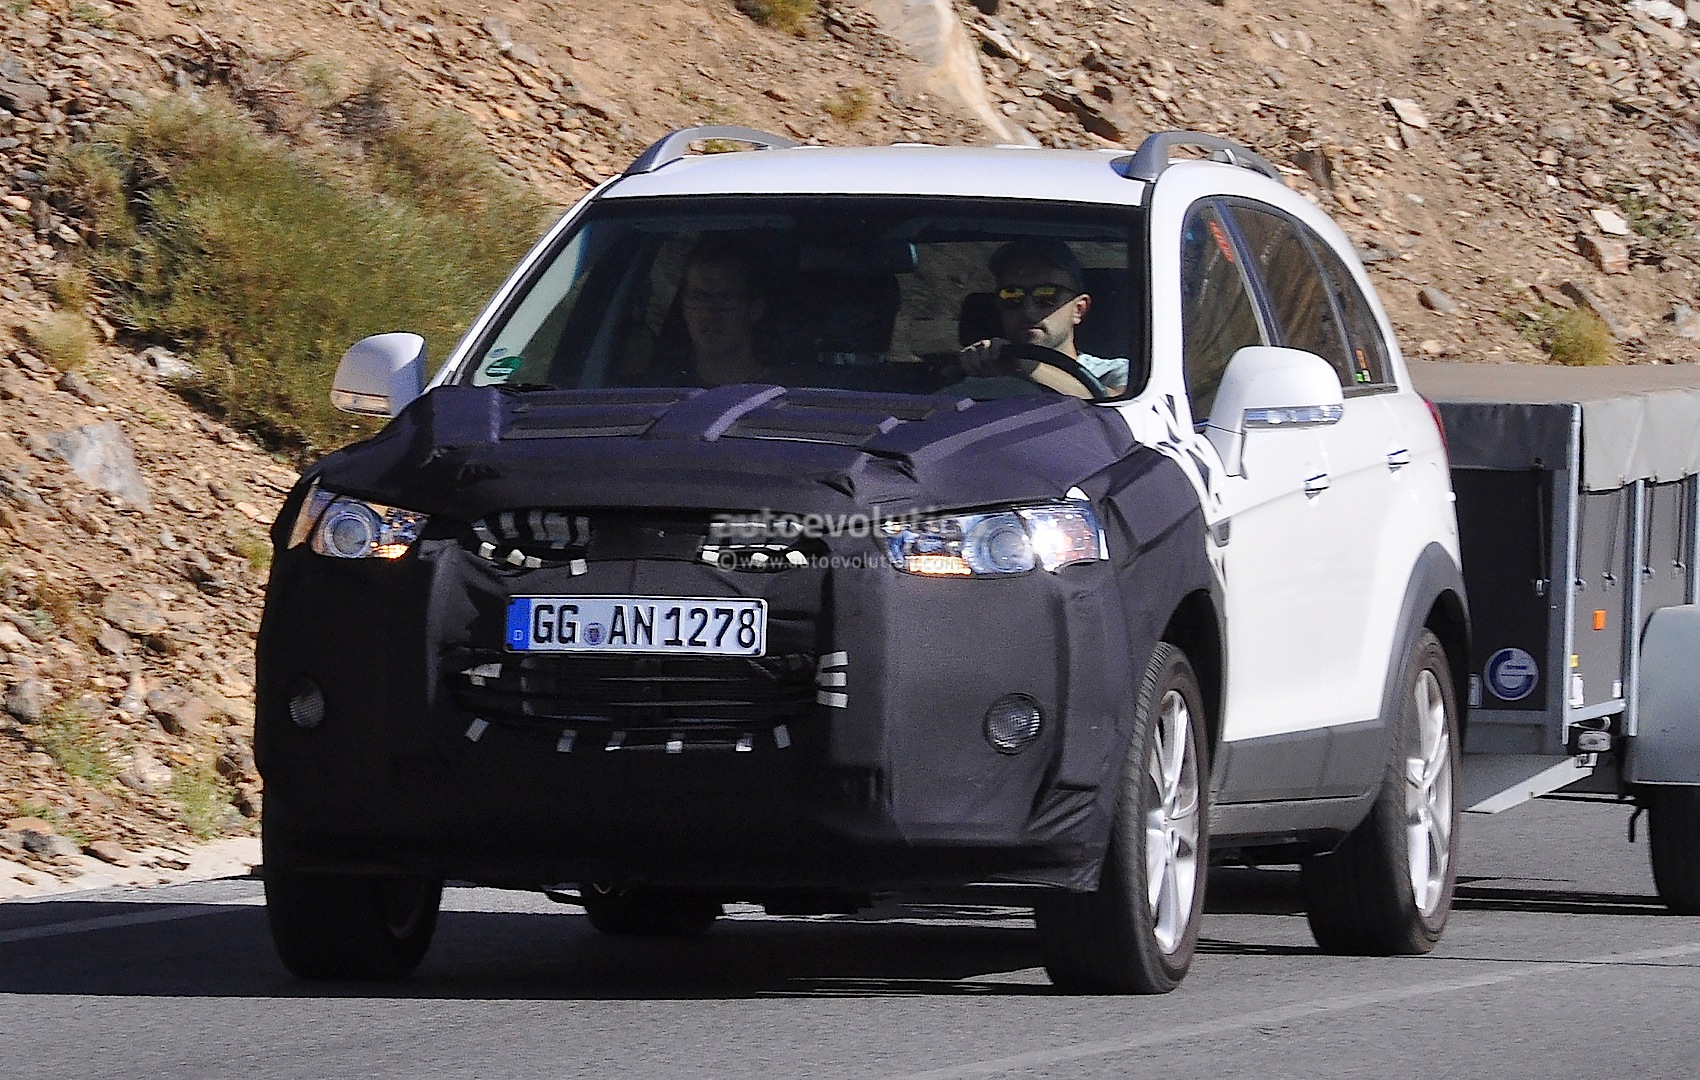 2015 Chevrolet Captiva / Opel Antara Facelift Spied - autoevolution